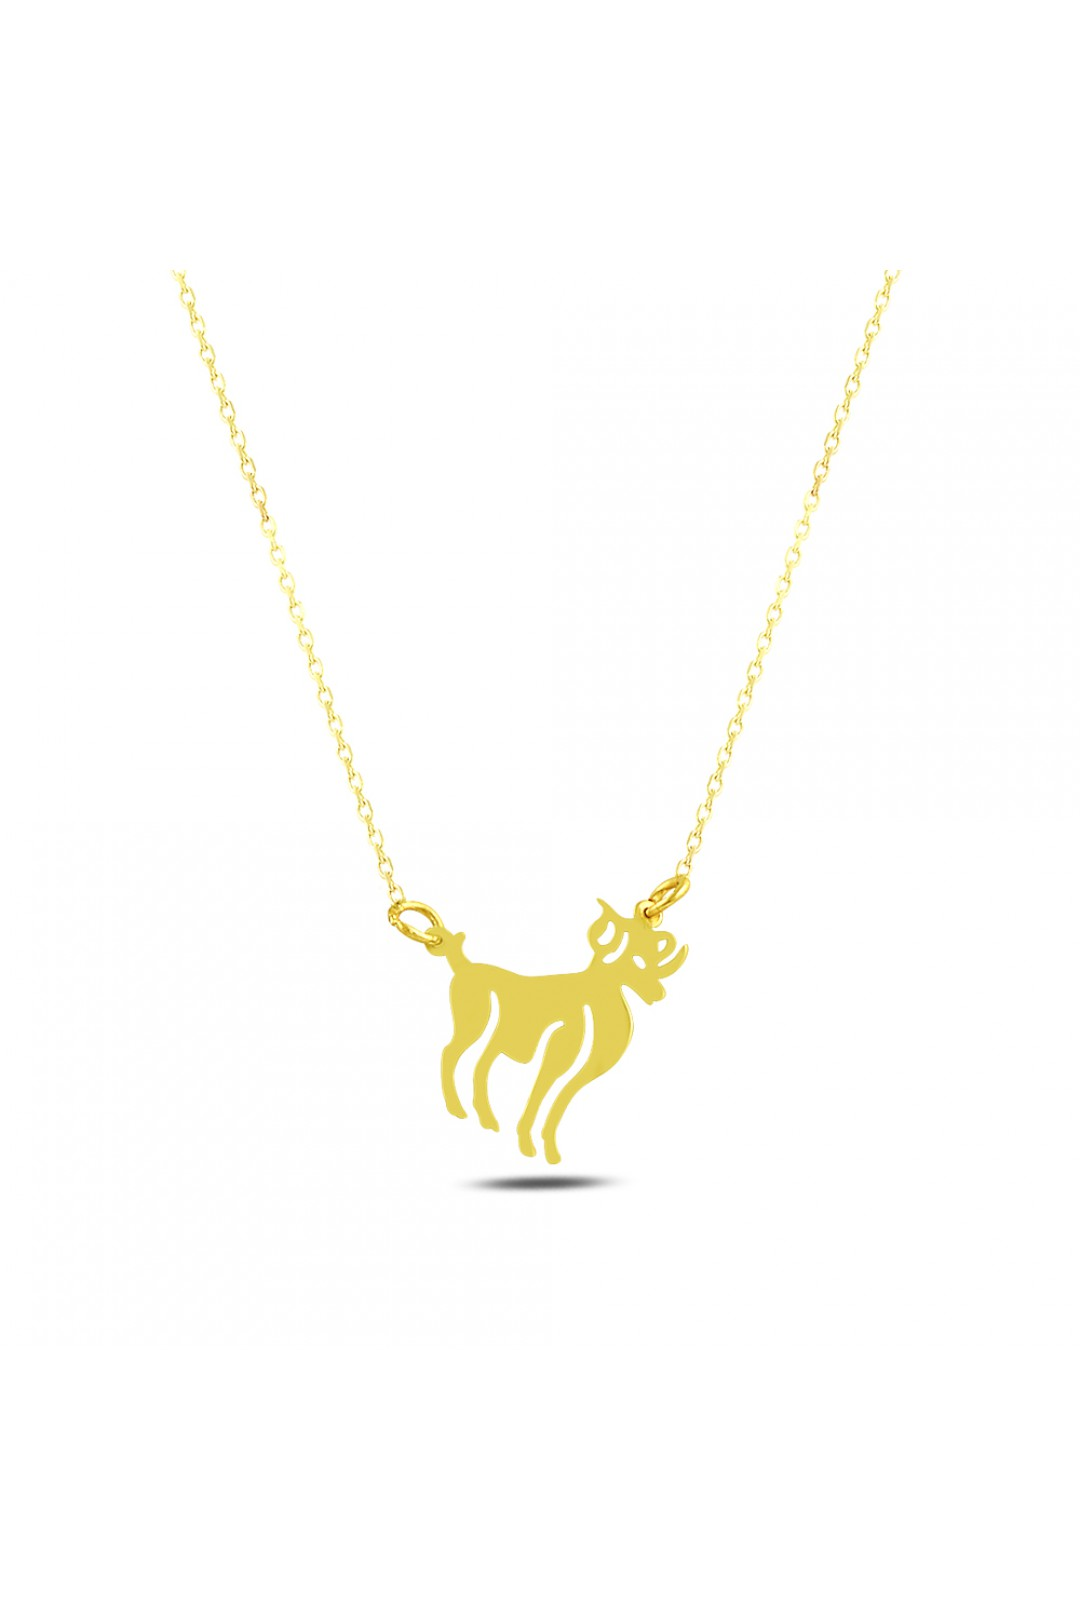 PUPPY RAM NECKLACE